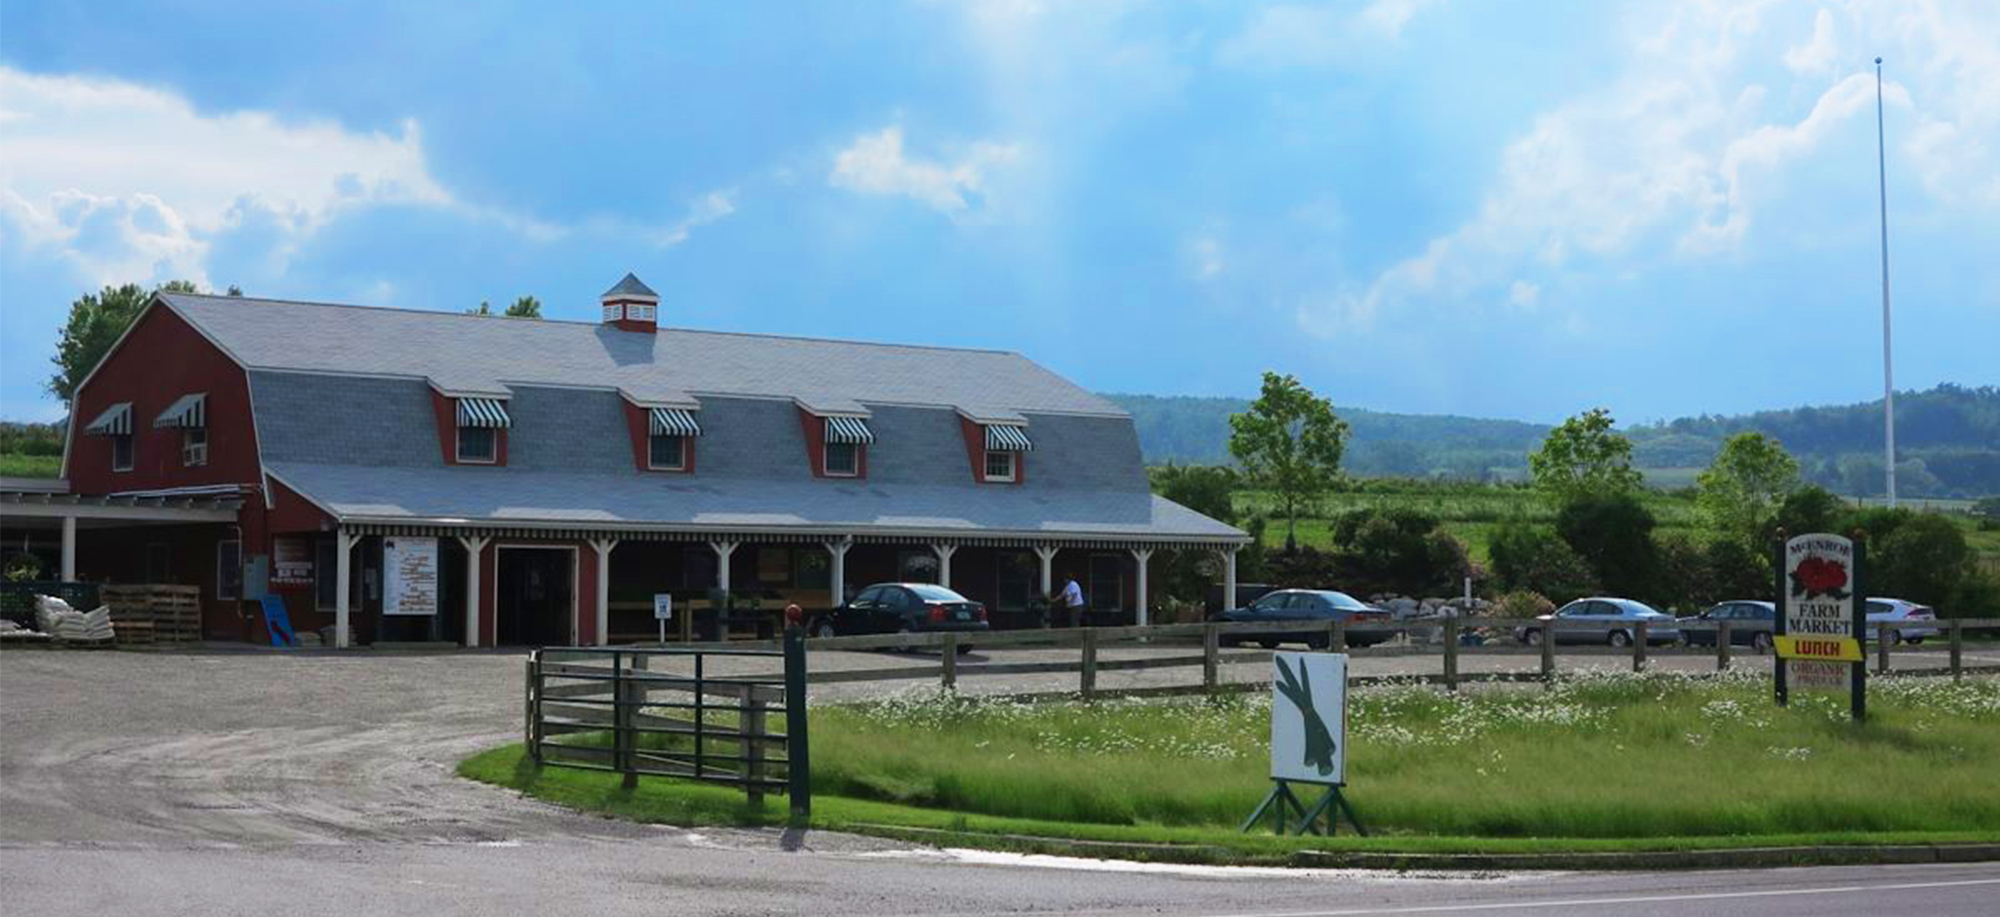 McEnroe Market is Located on 5409 Route 22 in Millerton, New York